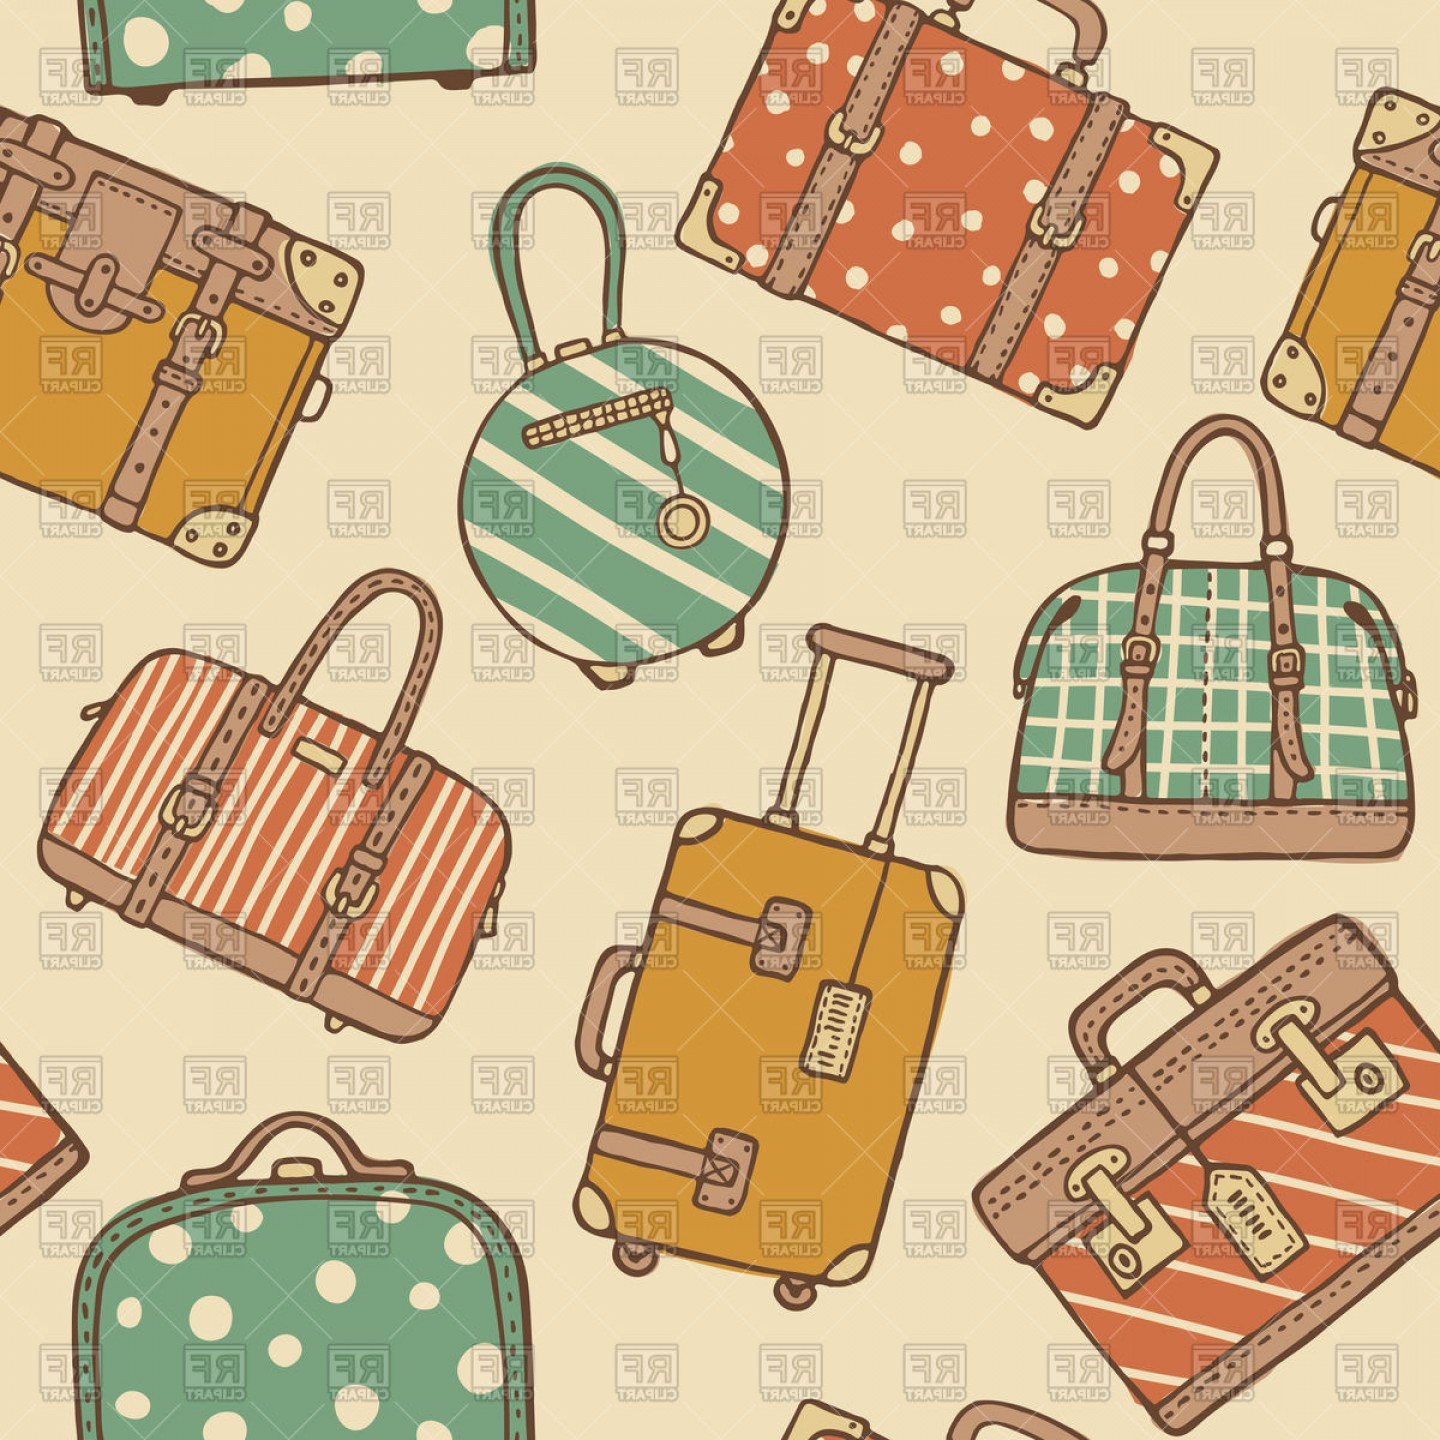 Vintage Luggage Vector: Hand Drawn Seamless Pattern Of Vintage Travel Suitcases And Bags Vector Clipart